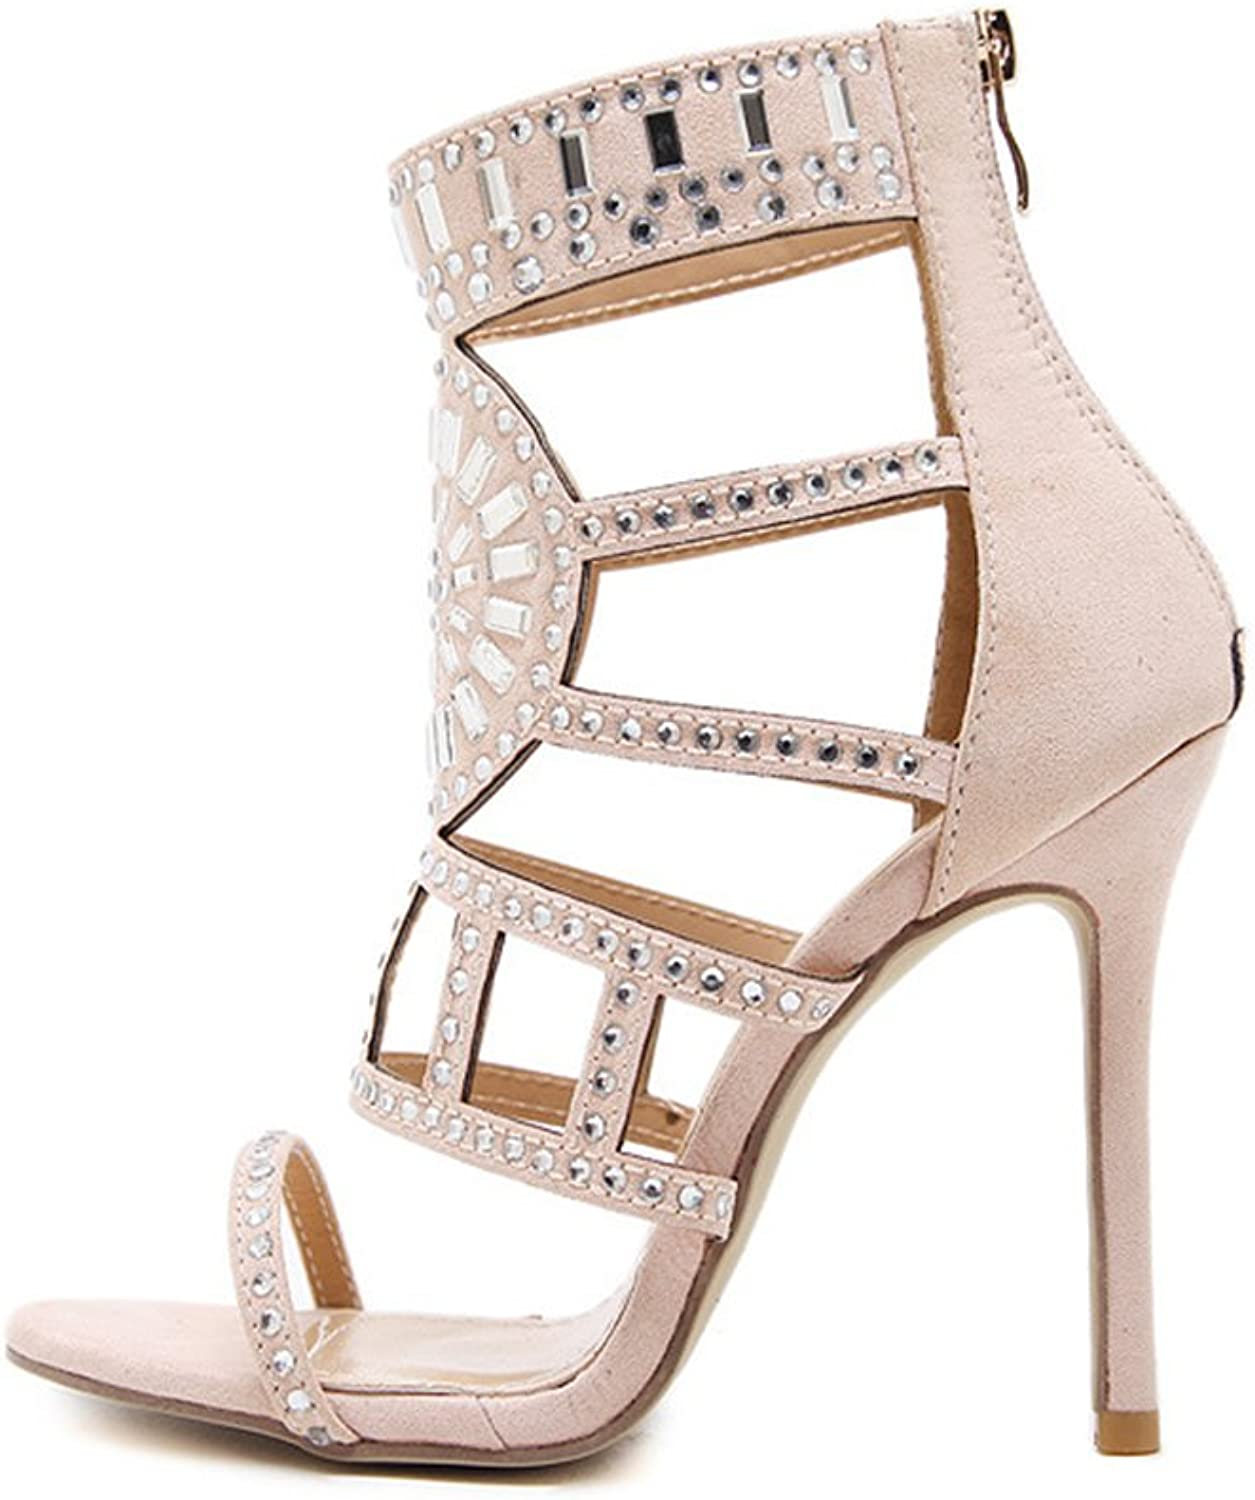 Womens Open Toe Strappy Cuff Stiletto High Heel Rhinestone Embellished Single Soles Sandals